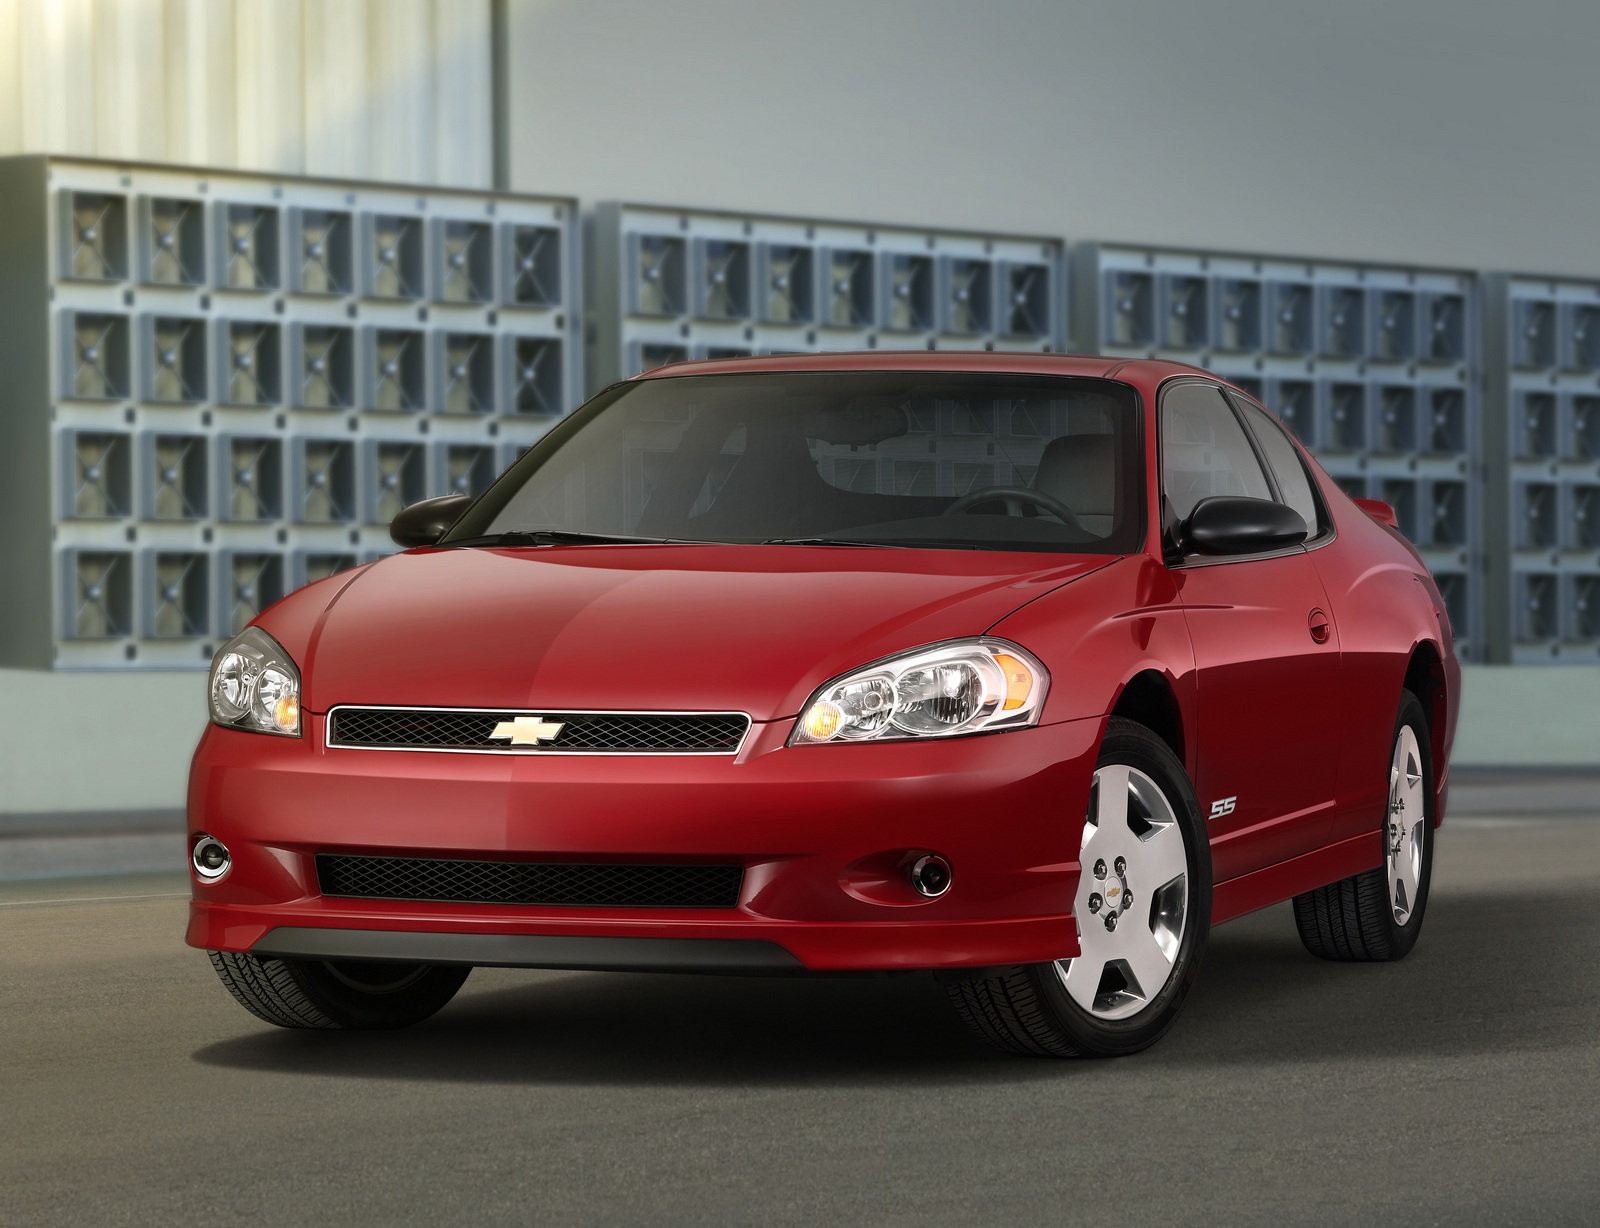 2006 chevrolet monte carlo ss picture 90296 car review. Black Bedroom Furniture Sets. Home Design Ideas